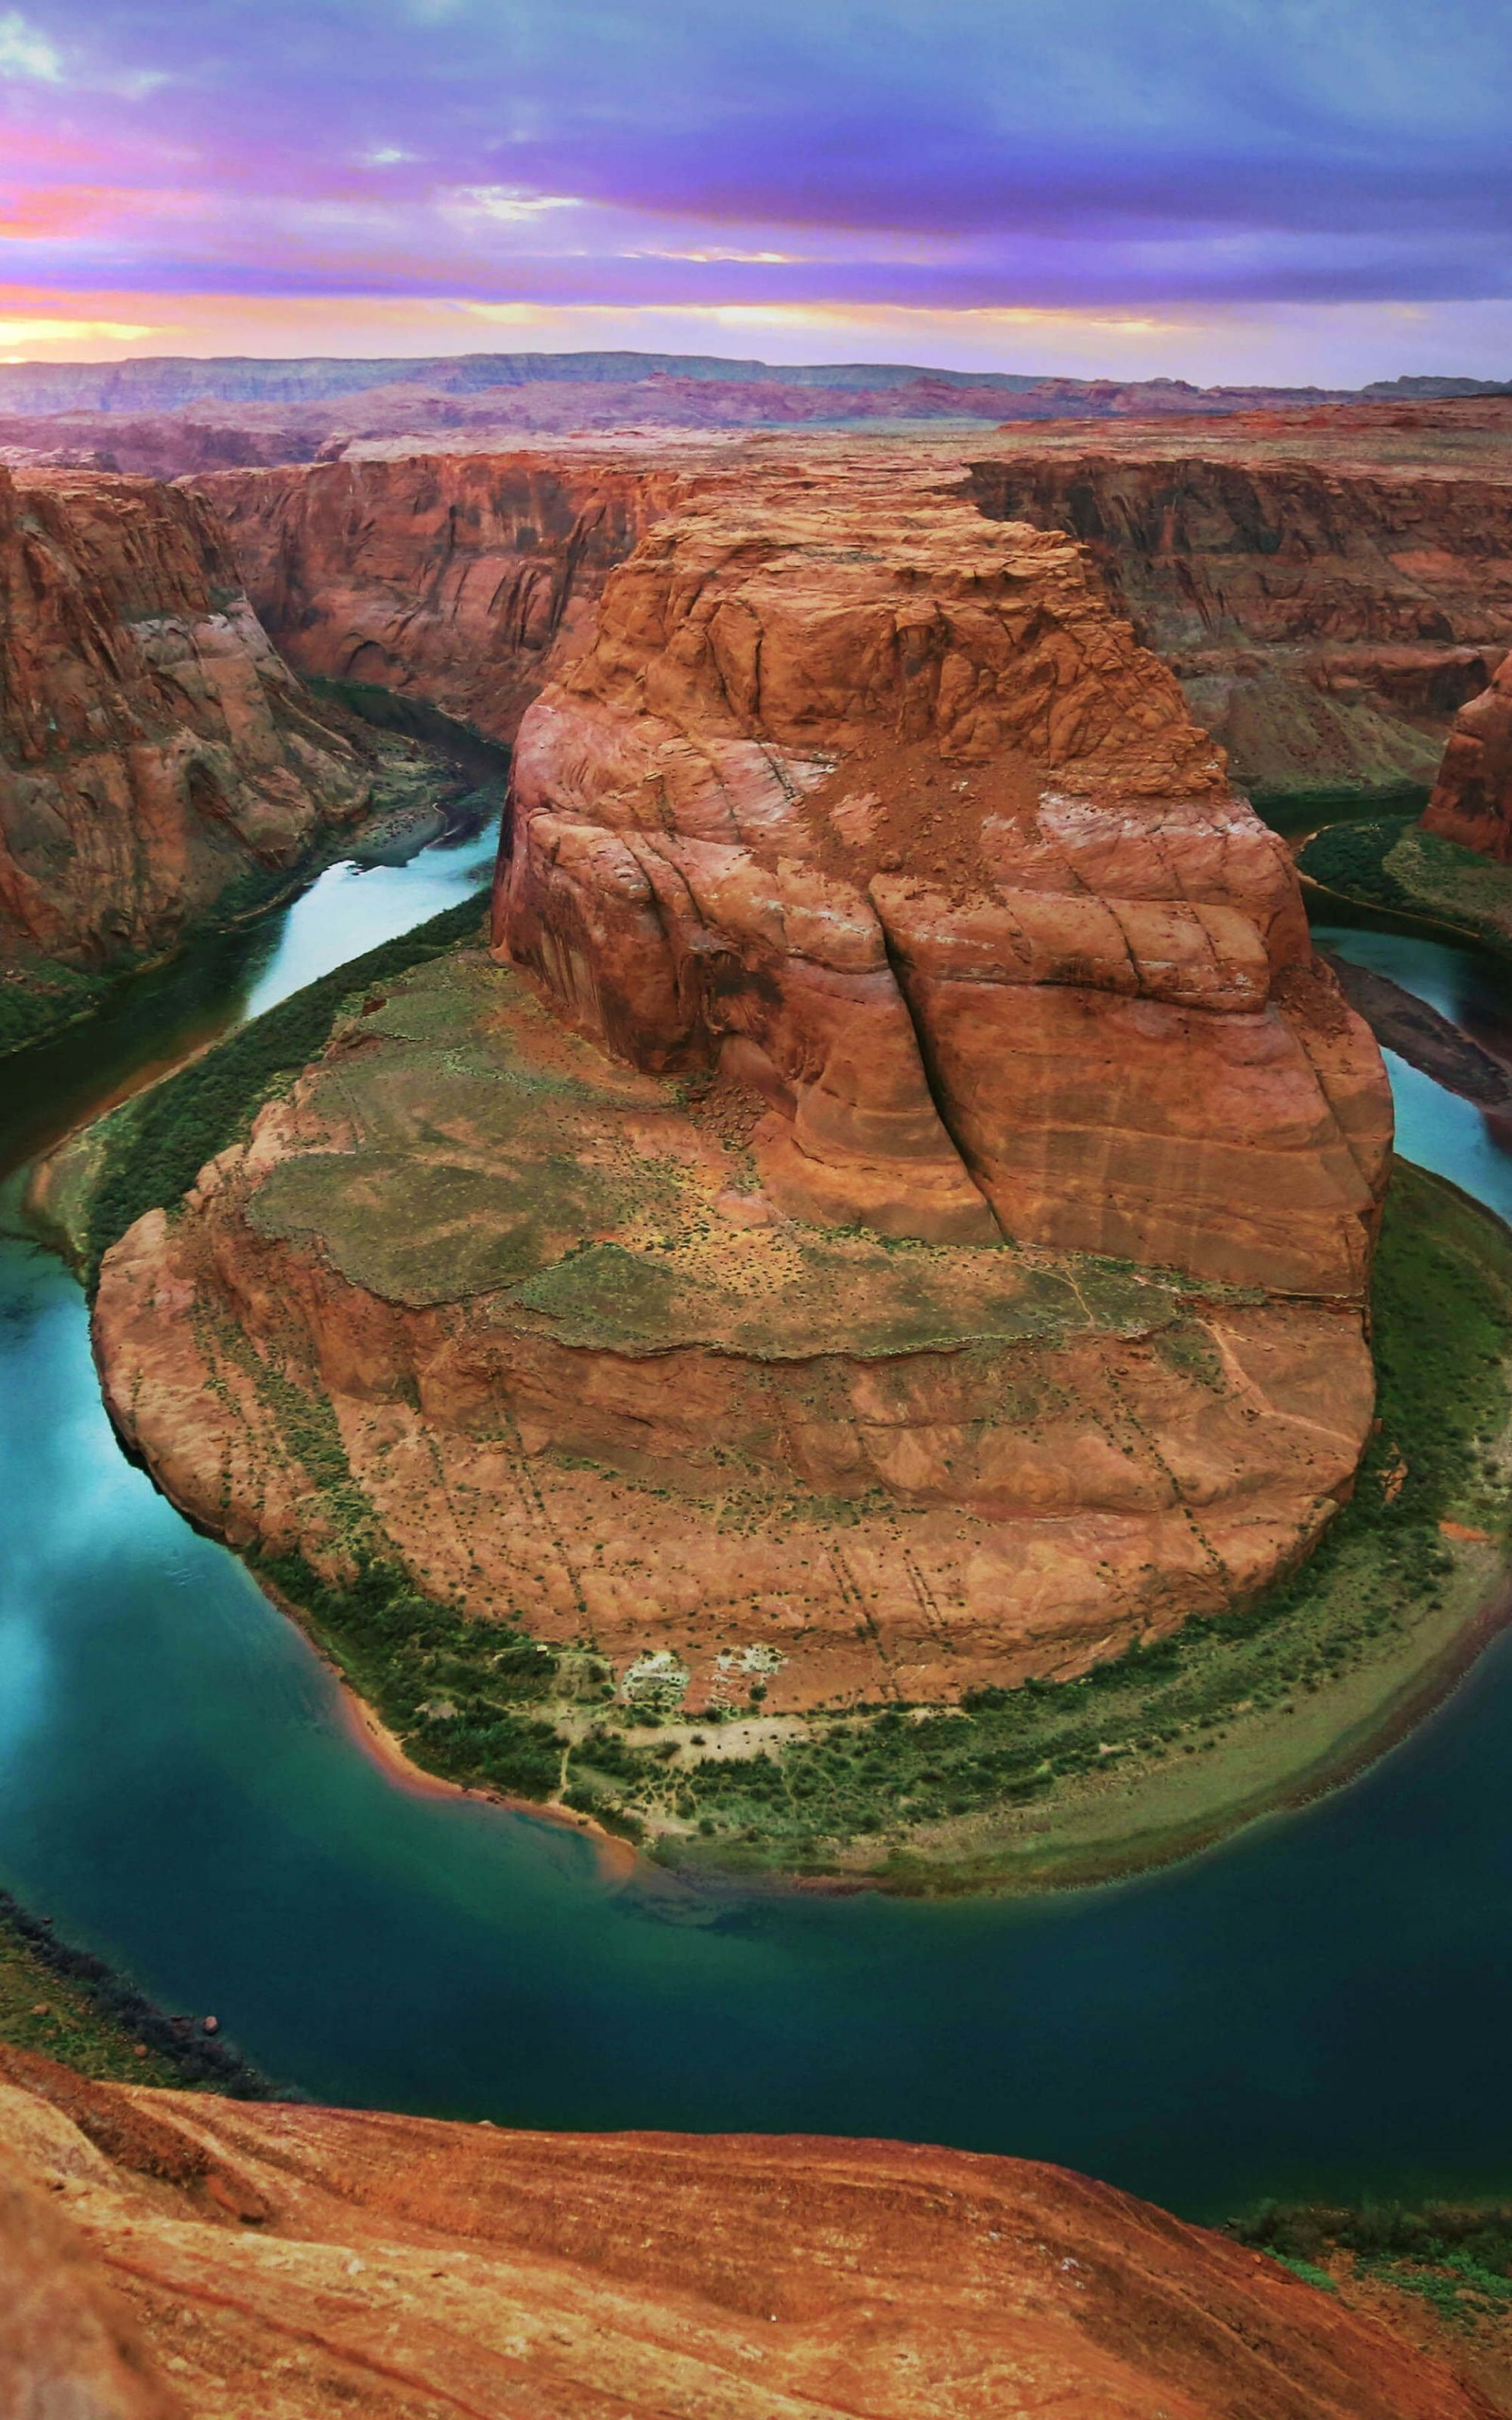 Horseshoe Bend Wallpaper for Amazon Kindle Fire HDX 8.9